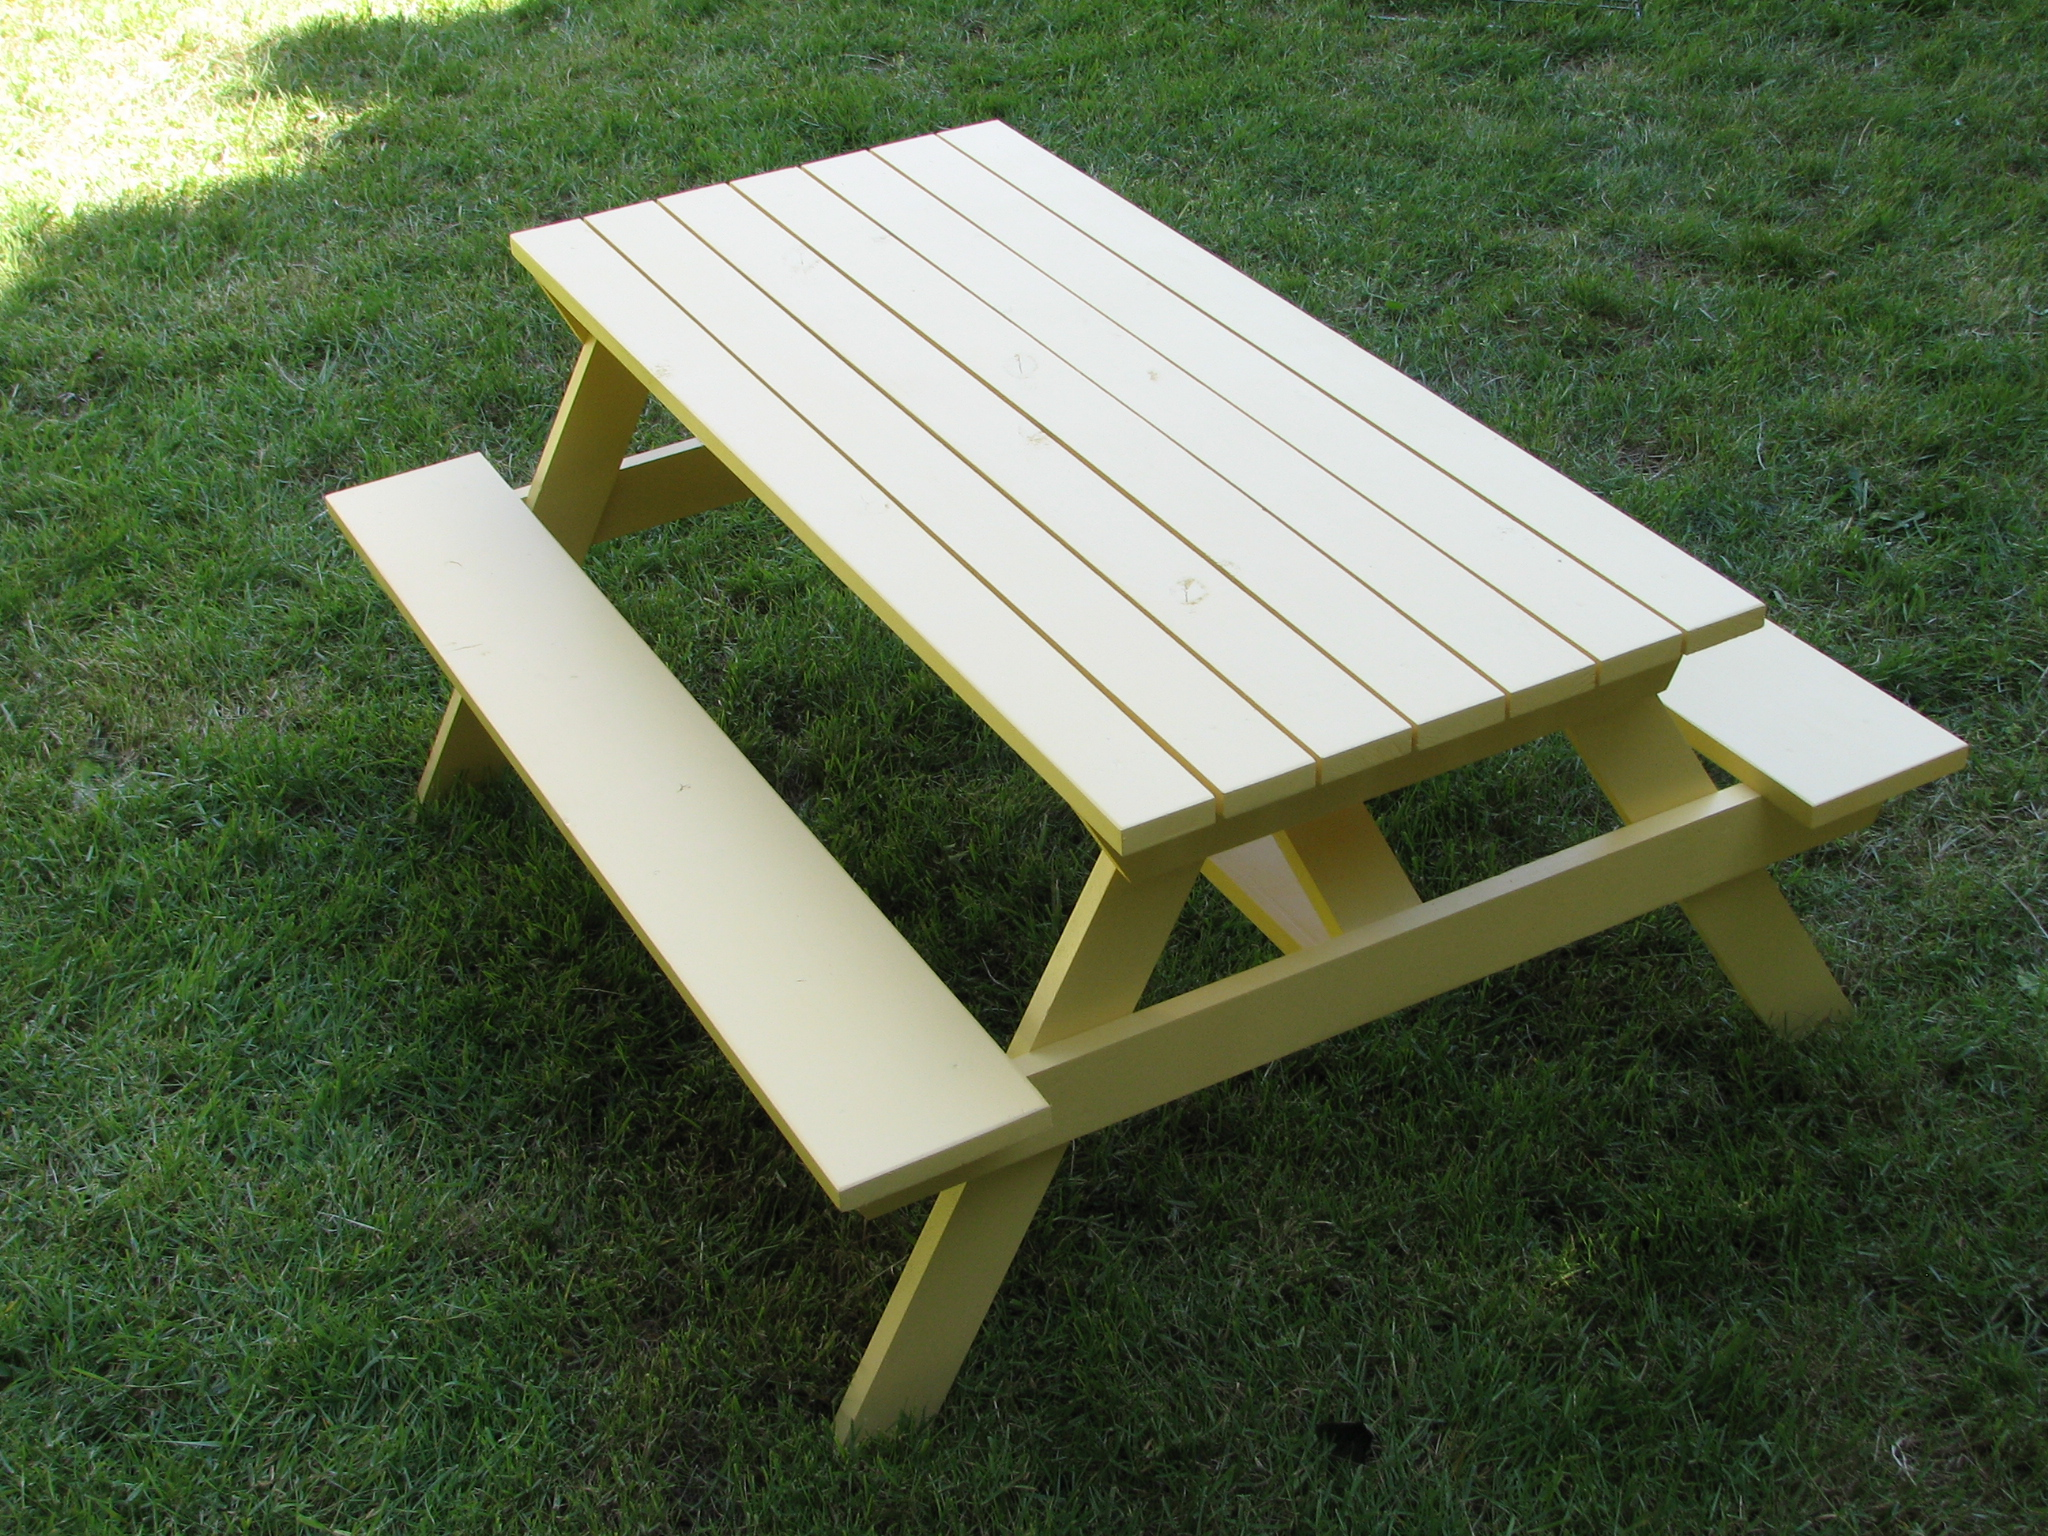 Ana white preschool picnic table with alterations diy - Fabriquer une table de picnic en bois ...